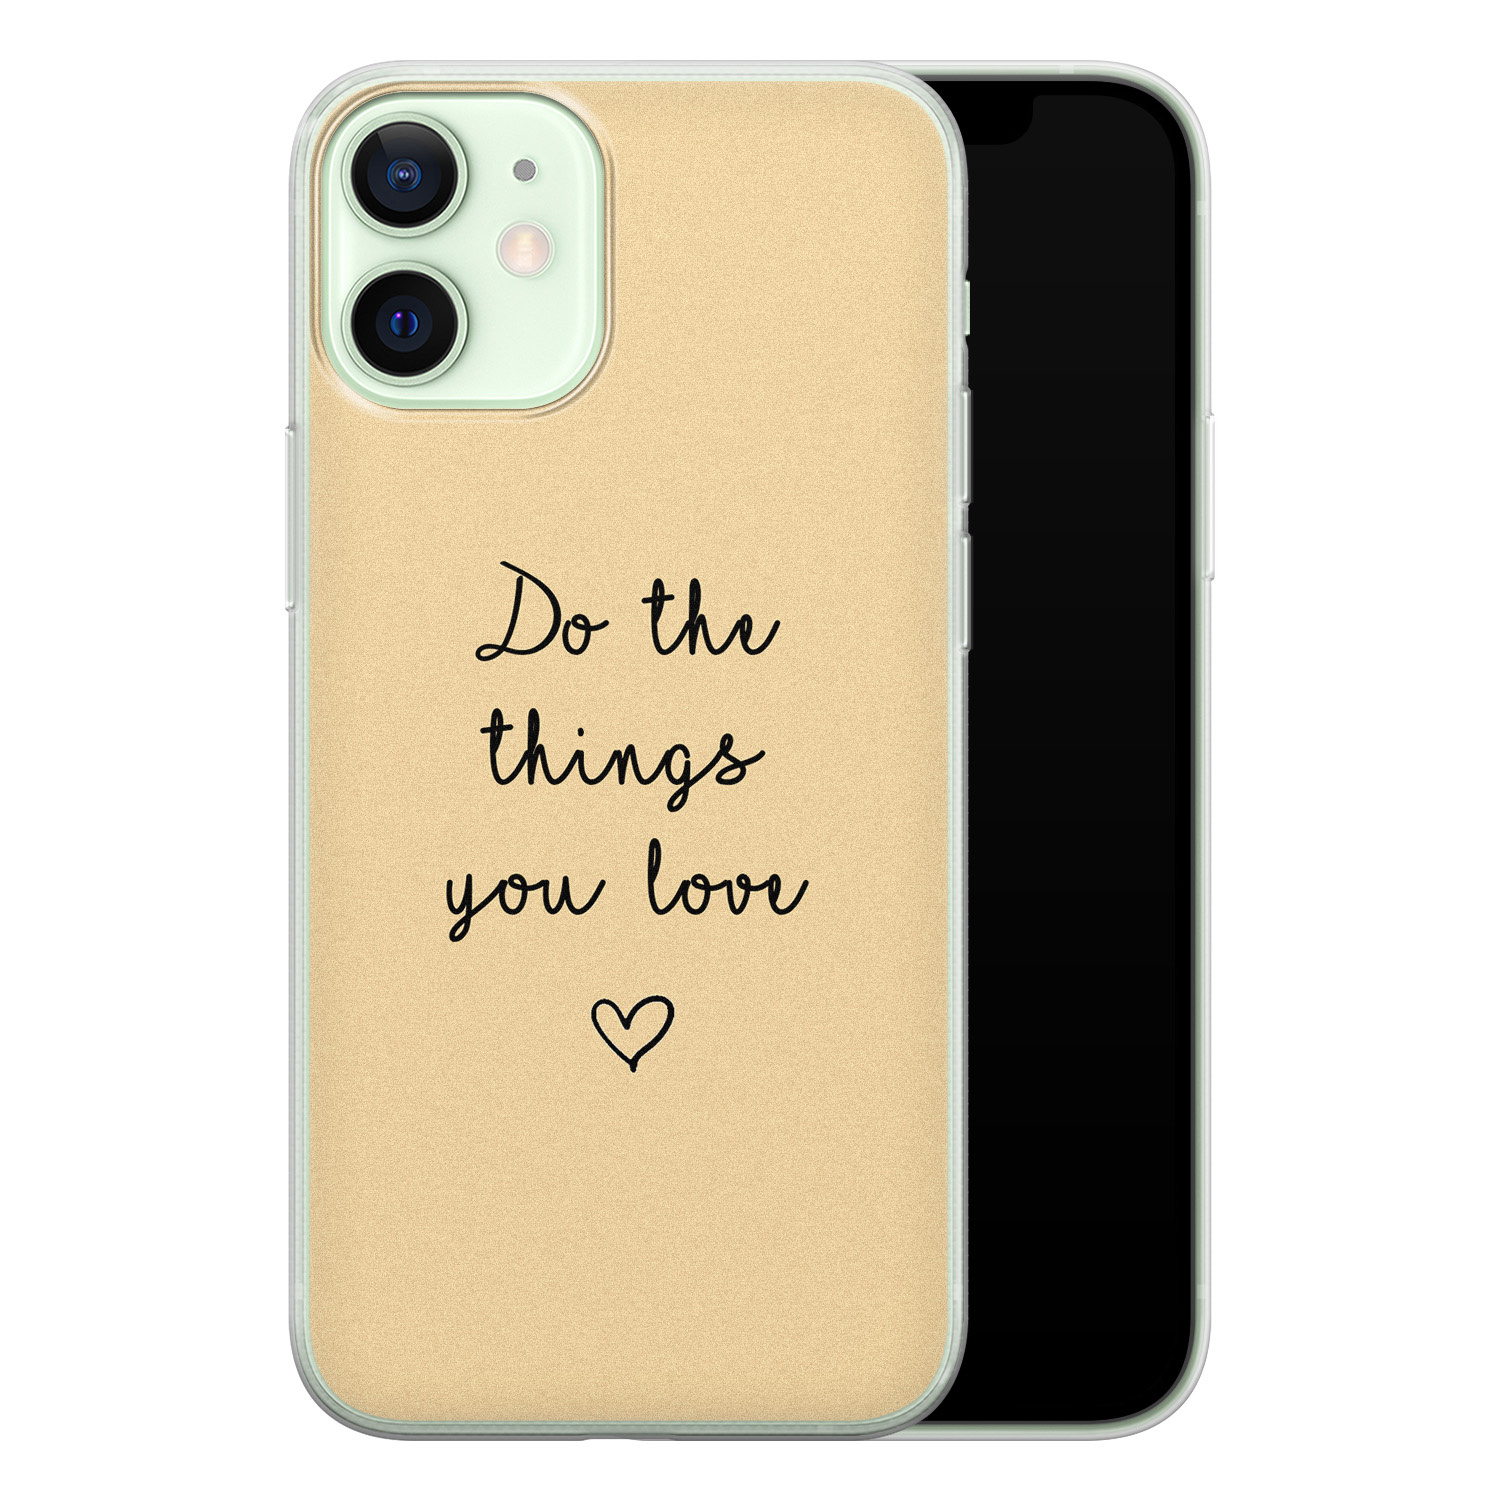 iPhone 12 mini siliconen hoesje - Do the things you love